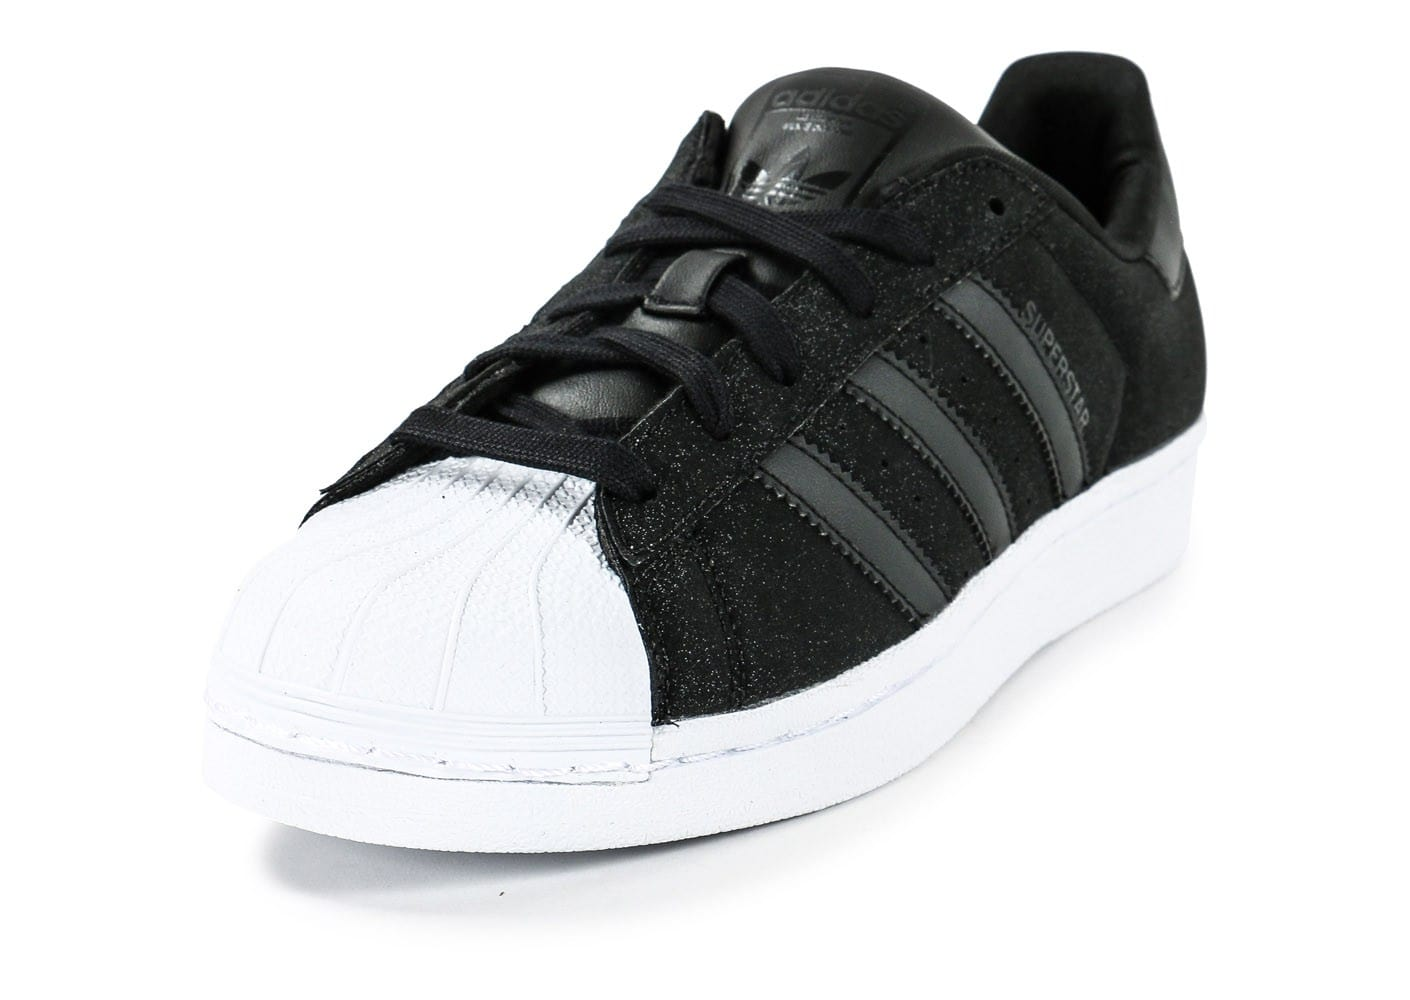 adidas superstar noir et paillette